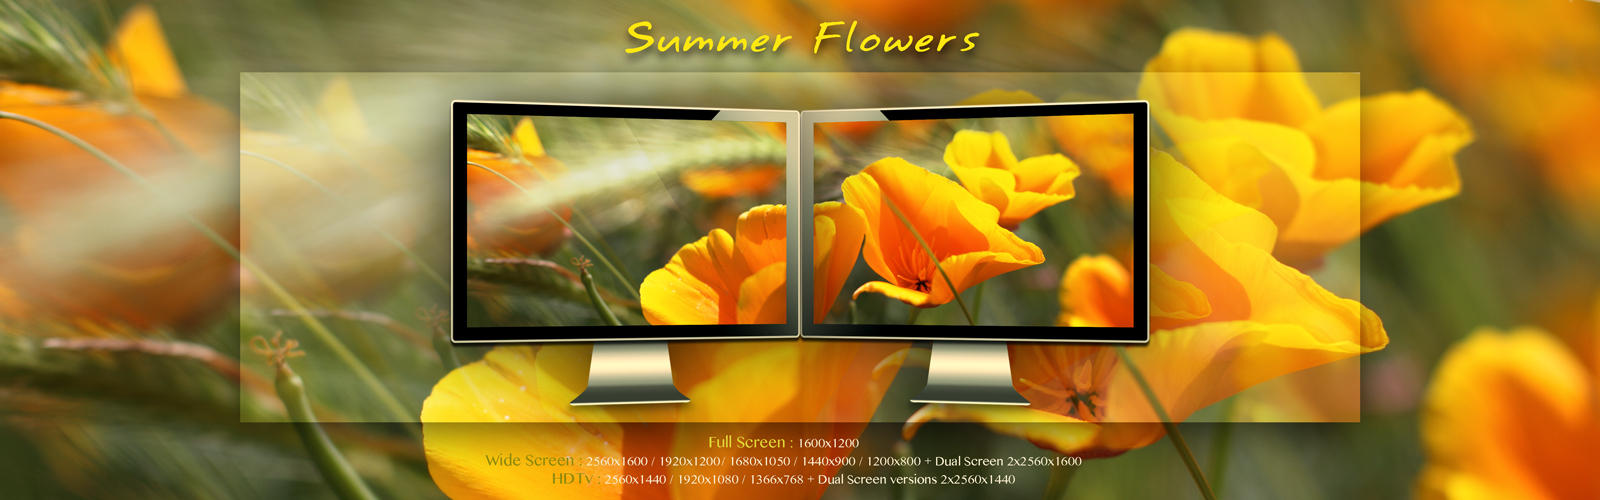 Summer Flowers Wallpaper Pack by Pierre-Lagarde